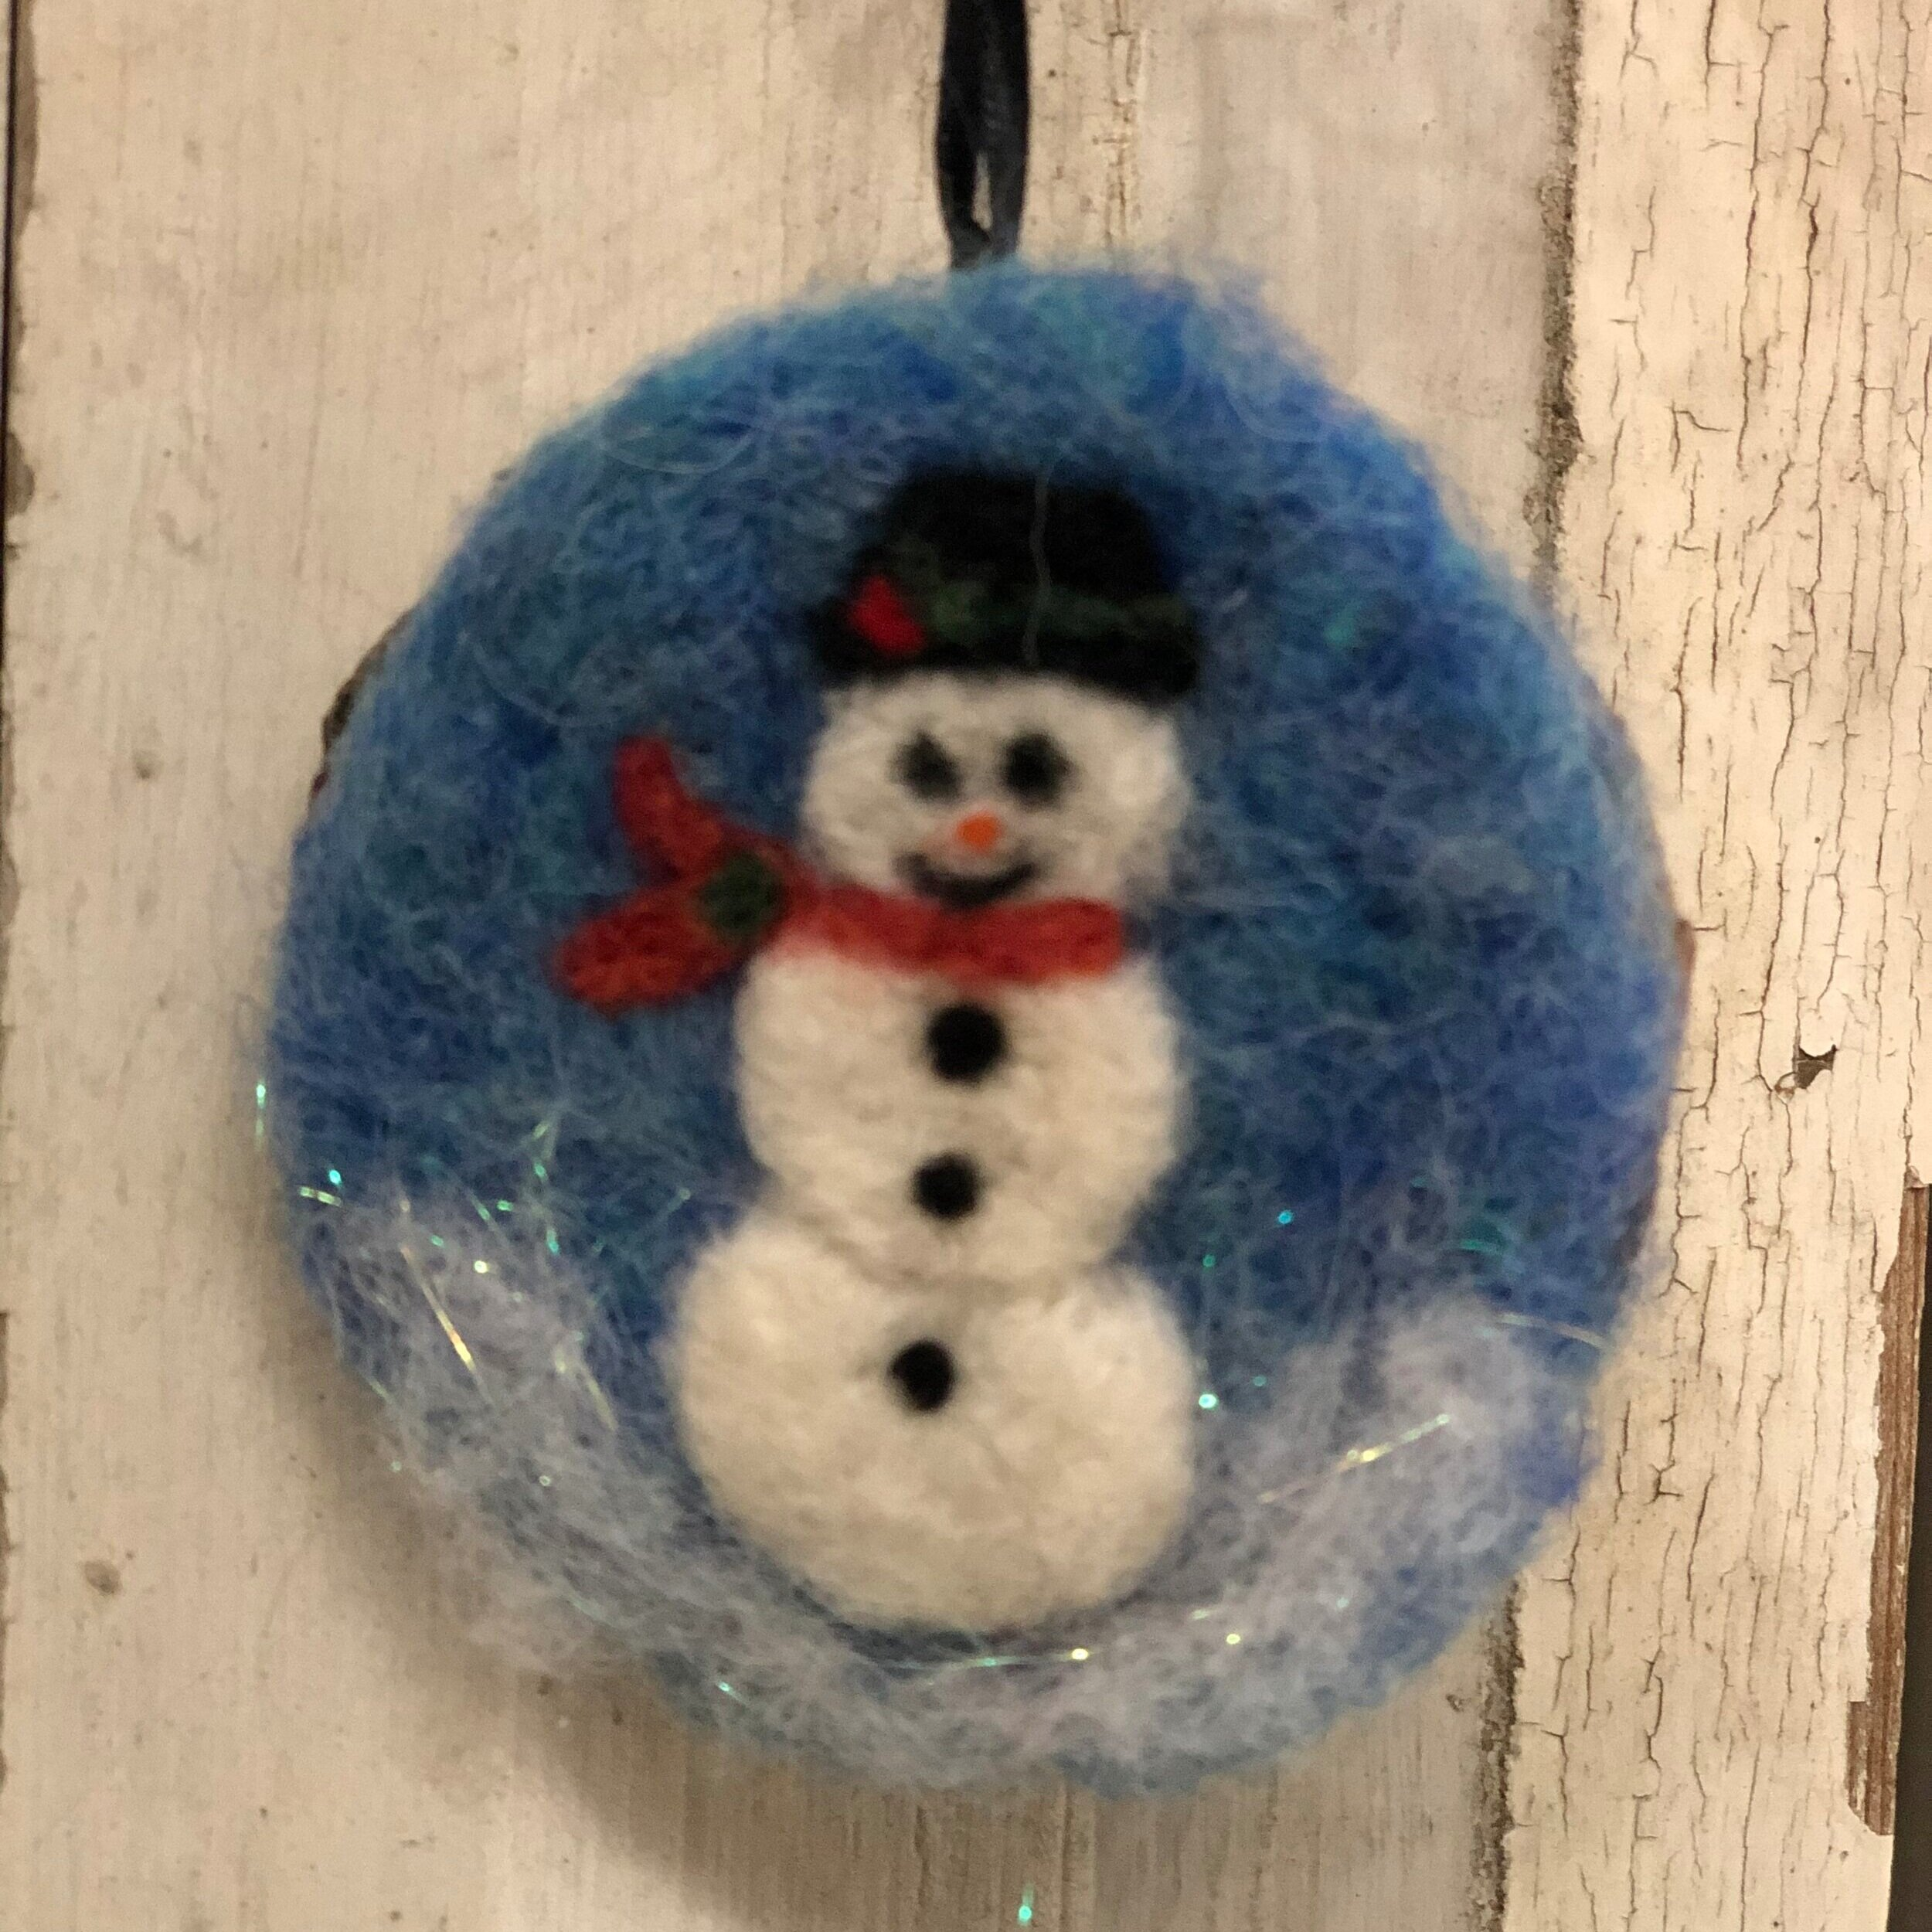 Needle Felted Holiday Ornament - Come and join us for a fun evening making two needle felted ornaments. You will learn to needle felt on a flat piece of felt, a cute fall or Christmas ornament. The finished design is then placed on a wood disk and ready to hang. It's so much fun and best of all, there are no rules! Suitable for beginners and experienced felters. All supplies are included.Instructor: LindaWorkshop Fee: $30, minimum 3, maximum 12